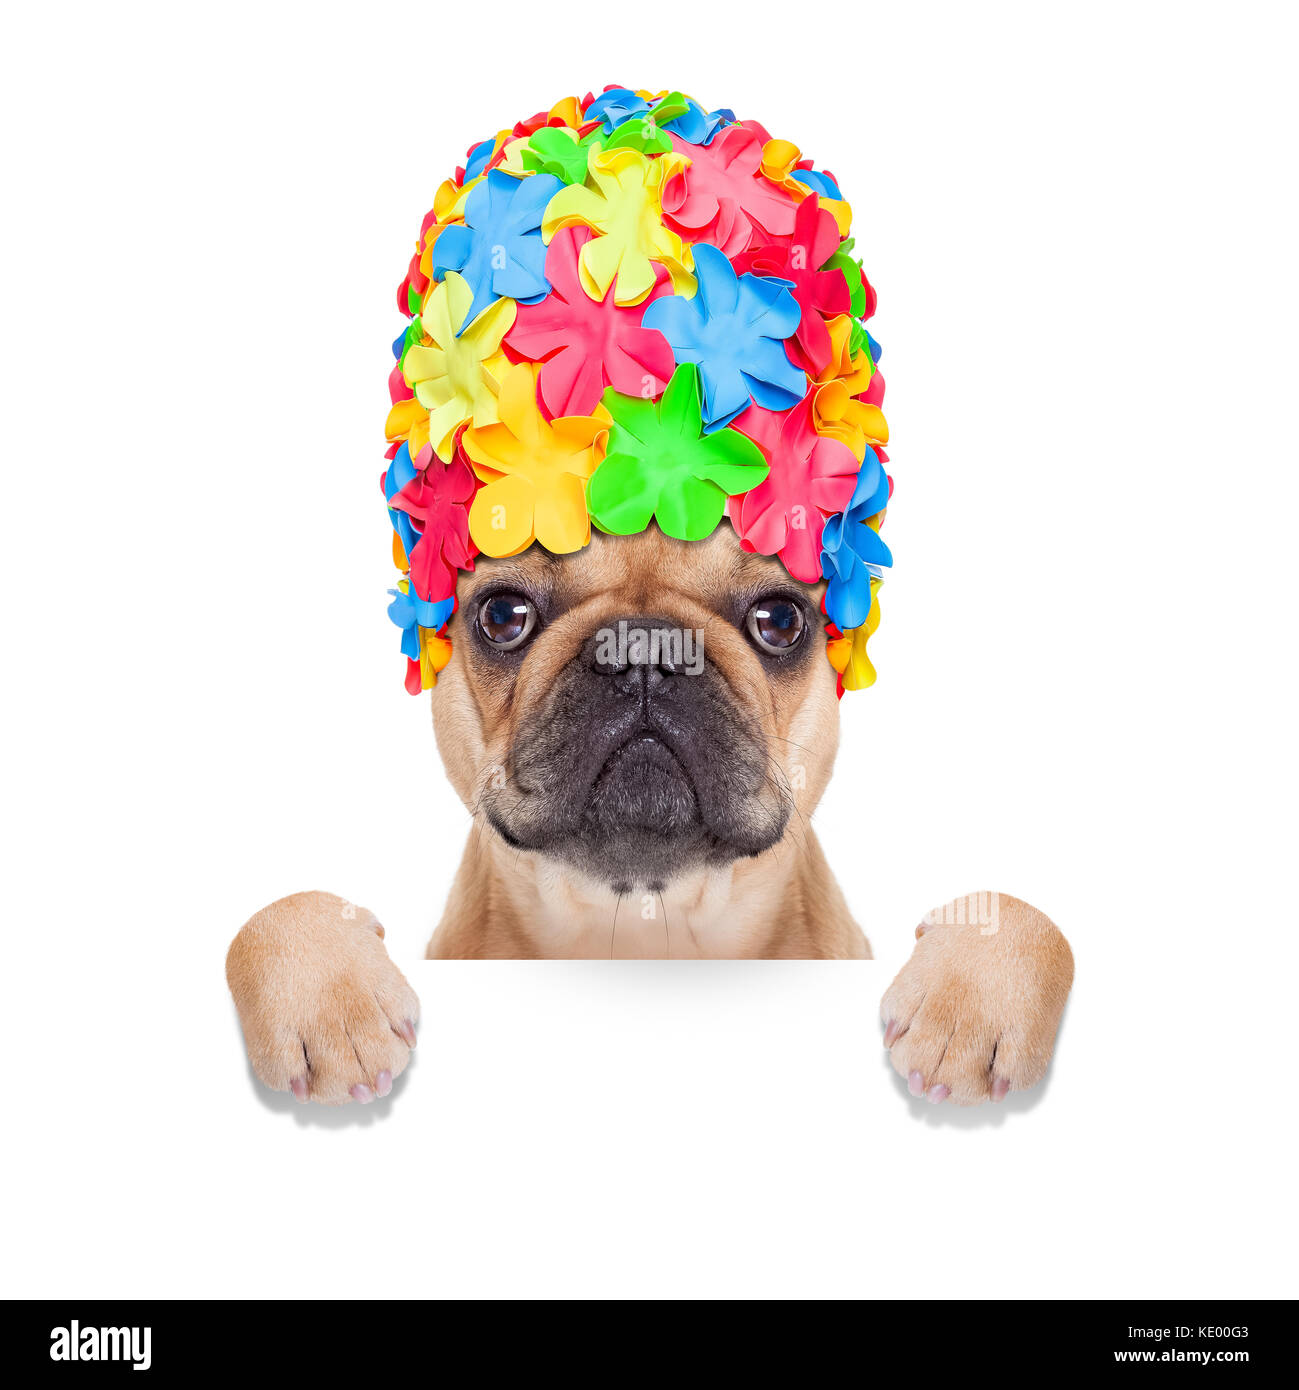 fawn french bulldog dog ready for summer vacation or holidays, behind  blank banner or placard, isolated on white - Stock Image